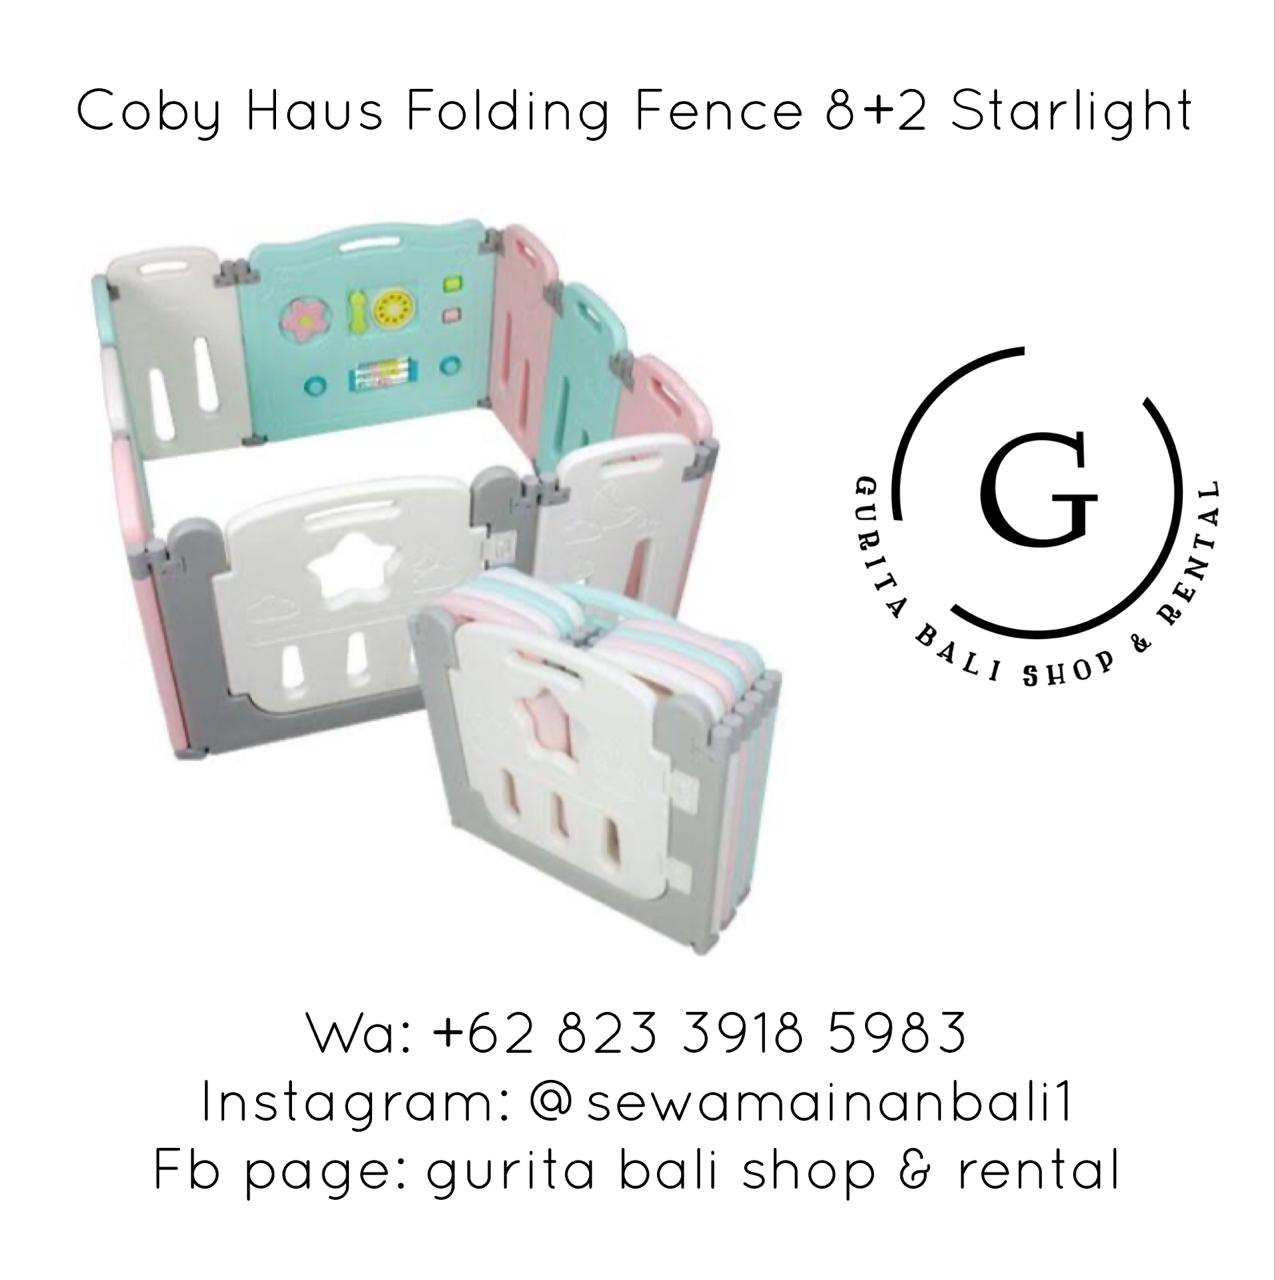 COBY HAUS FOLDING FENCE 8 + 2 STARLIGHT 2